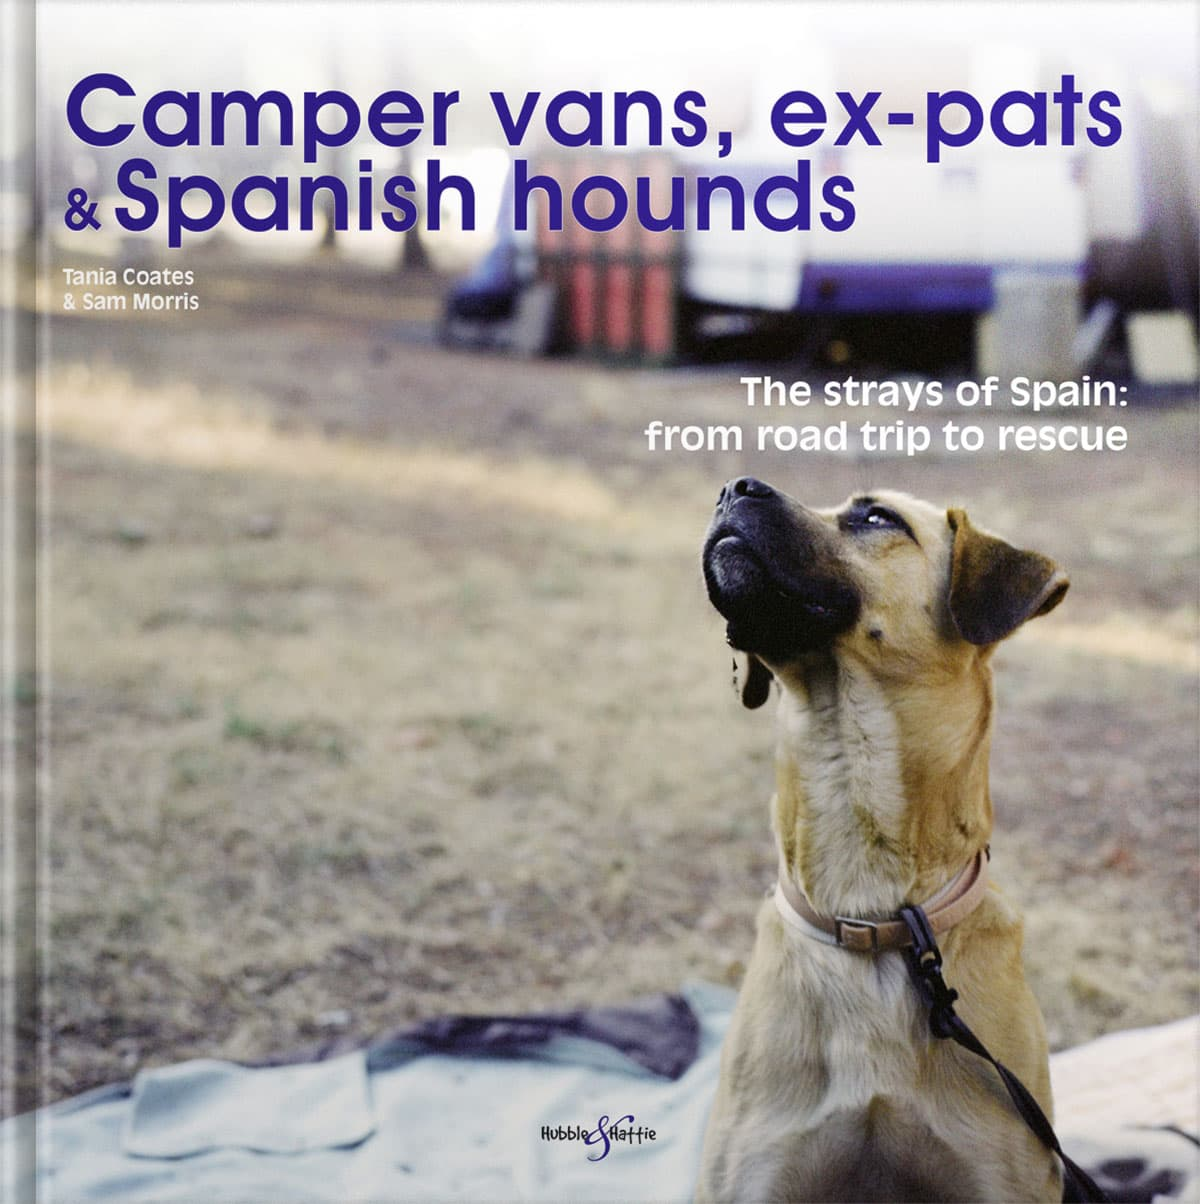 Camper vans, ex-pates, and Spanish hounds